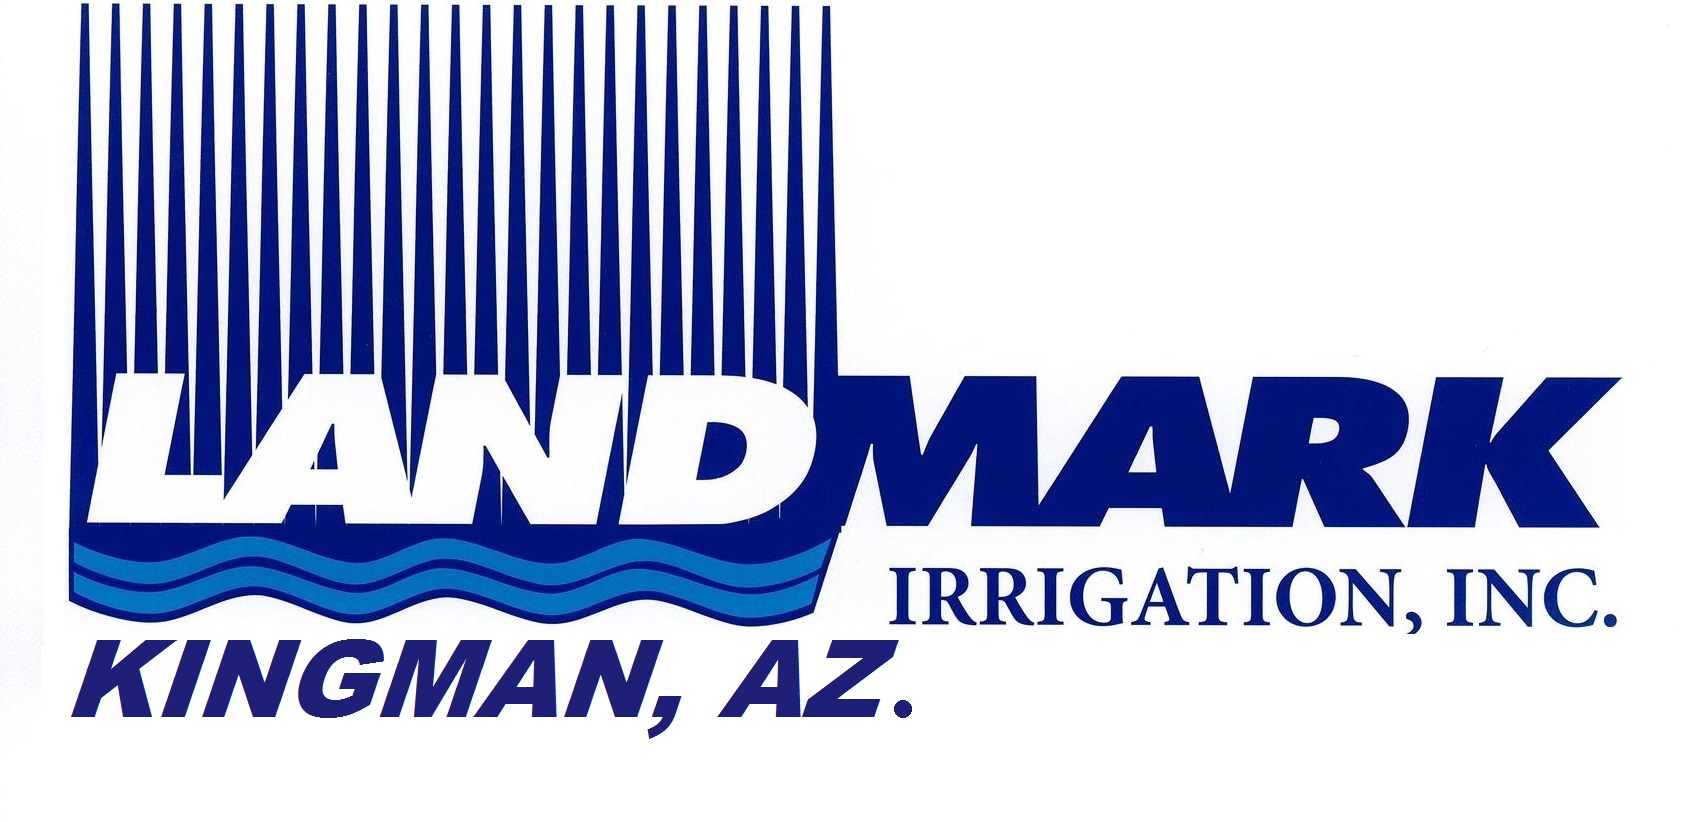 LMI Logo 2 KINGMAN AZ FINAL.jpg